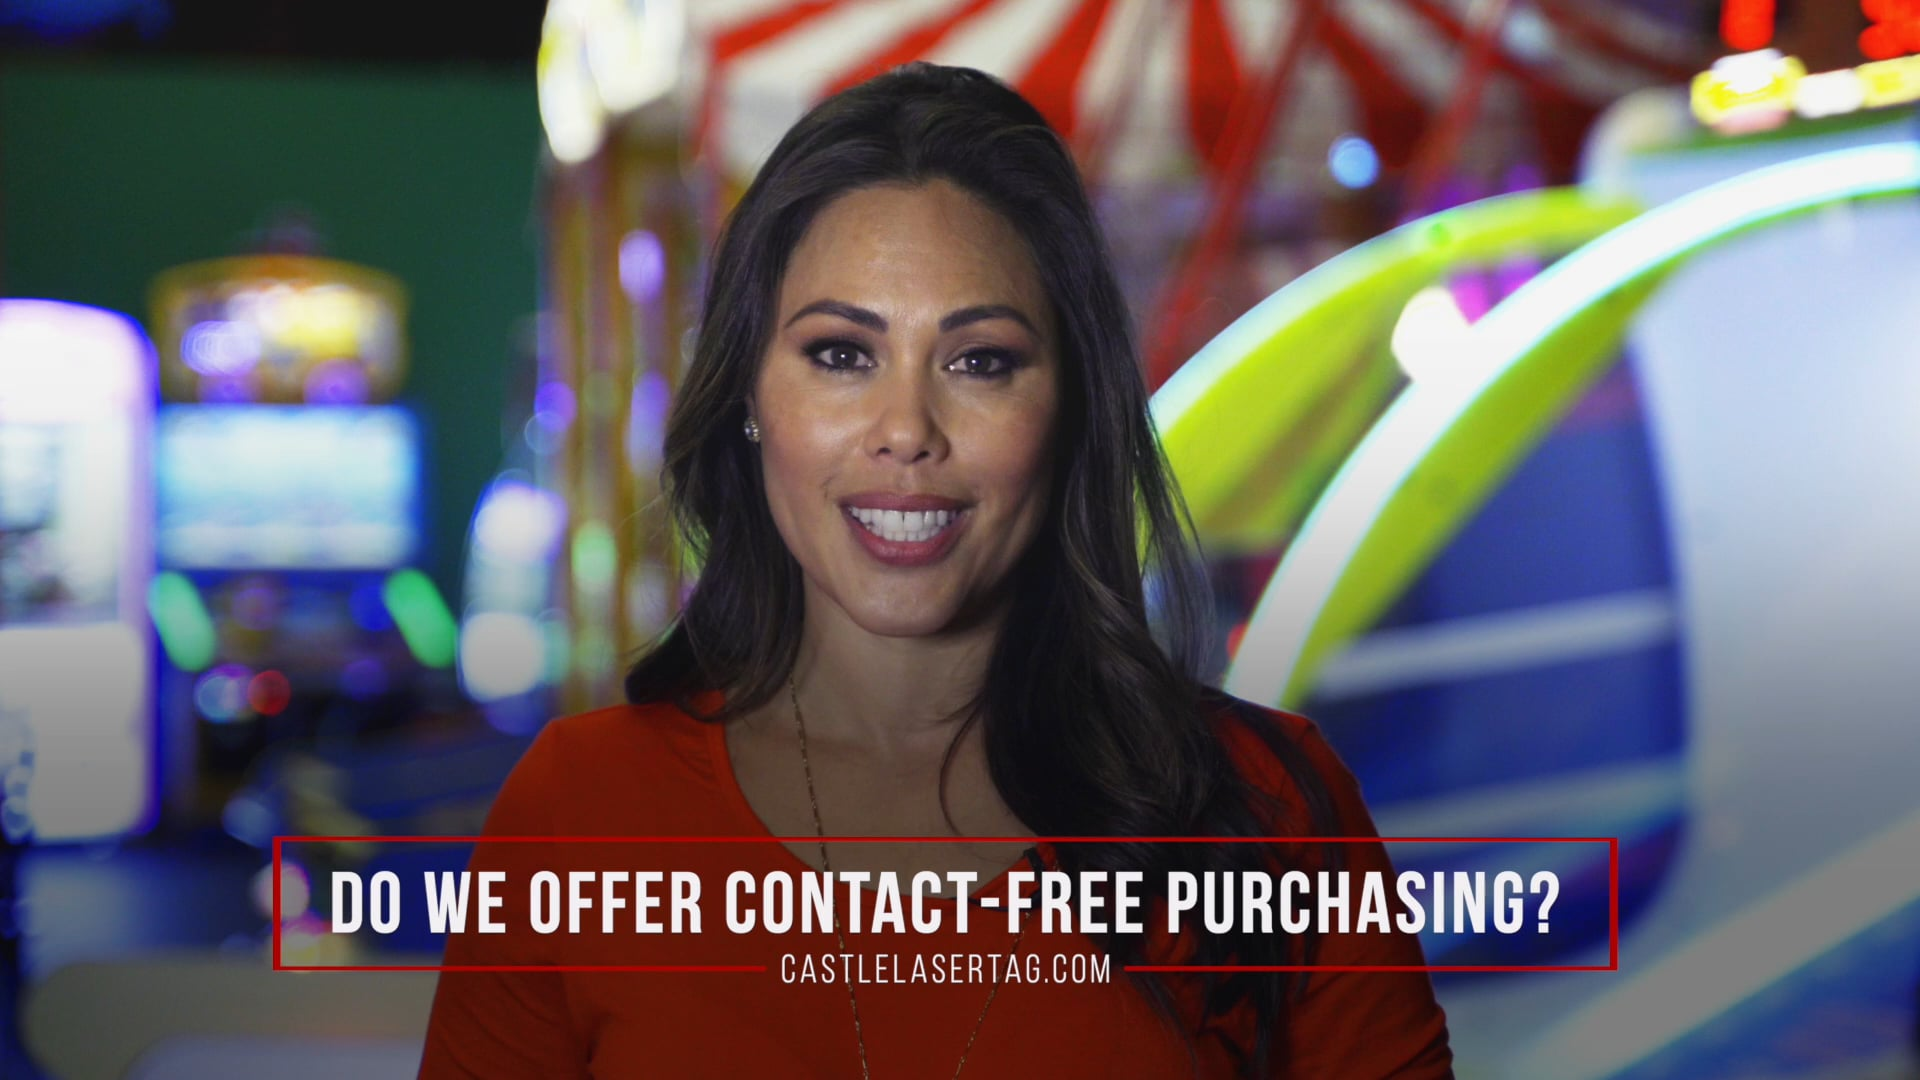 Do we offer contact-free purchasing?